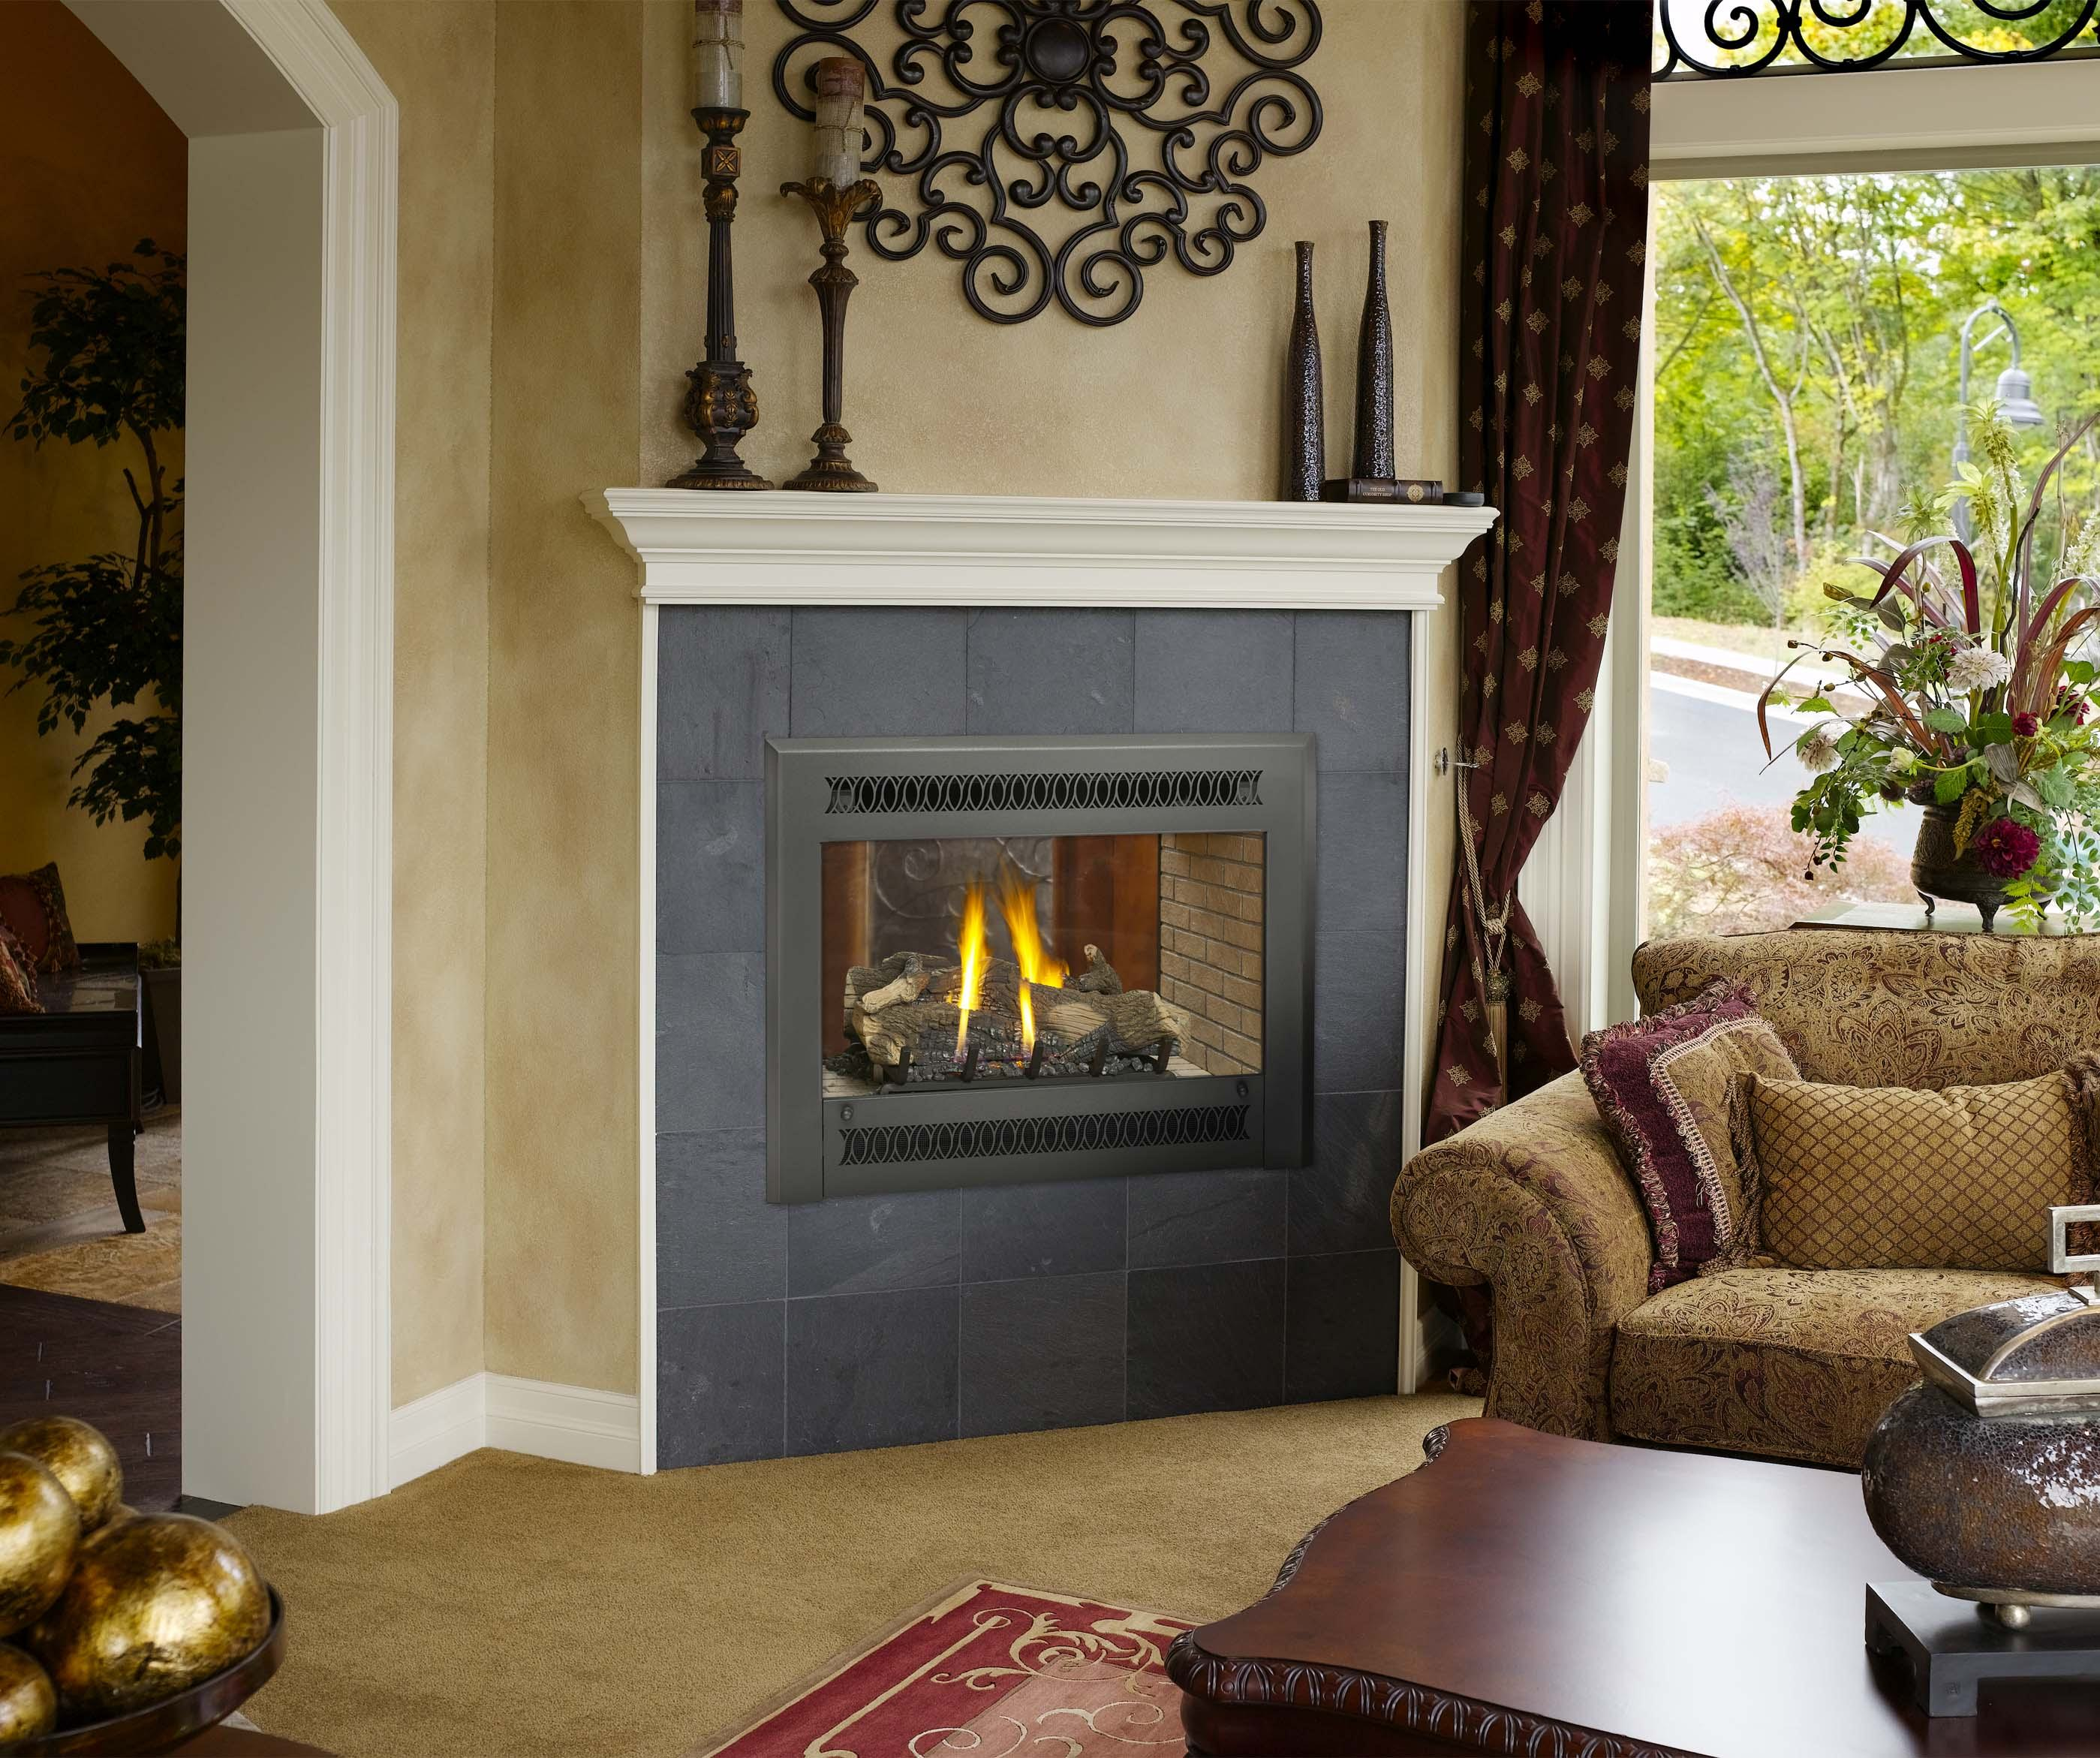 Fireplace Xtrordinair 864 See-Thru Gas Fireplace Metropolitan Face Black Painted with Tan Stacked Brick